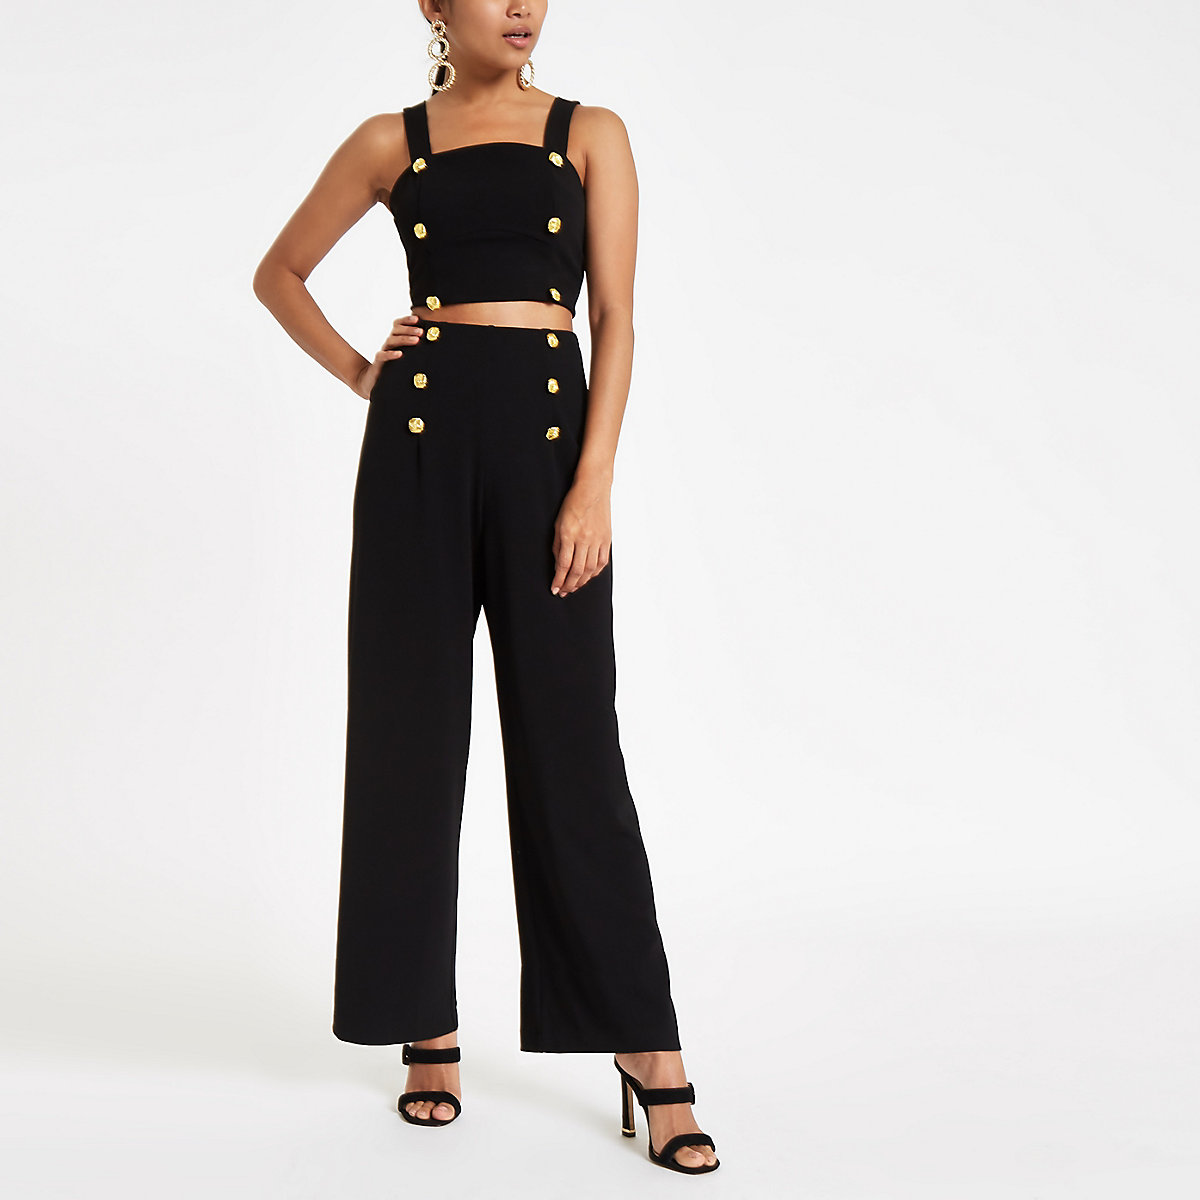 Petite black wide leg high waisted trousers